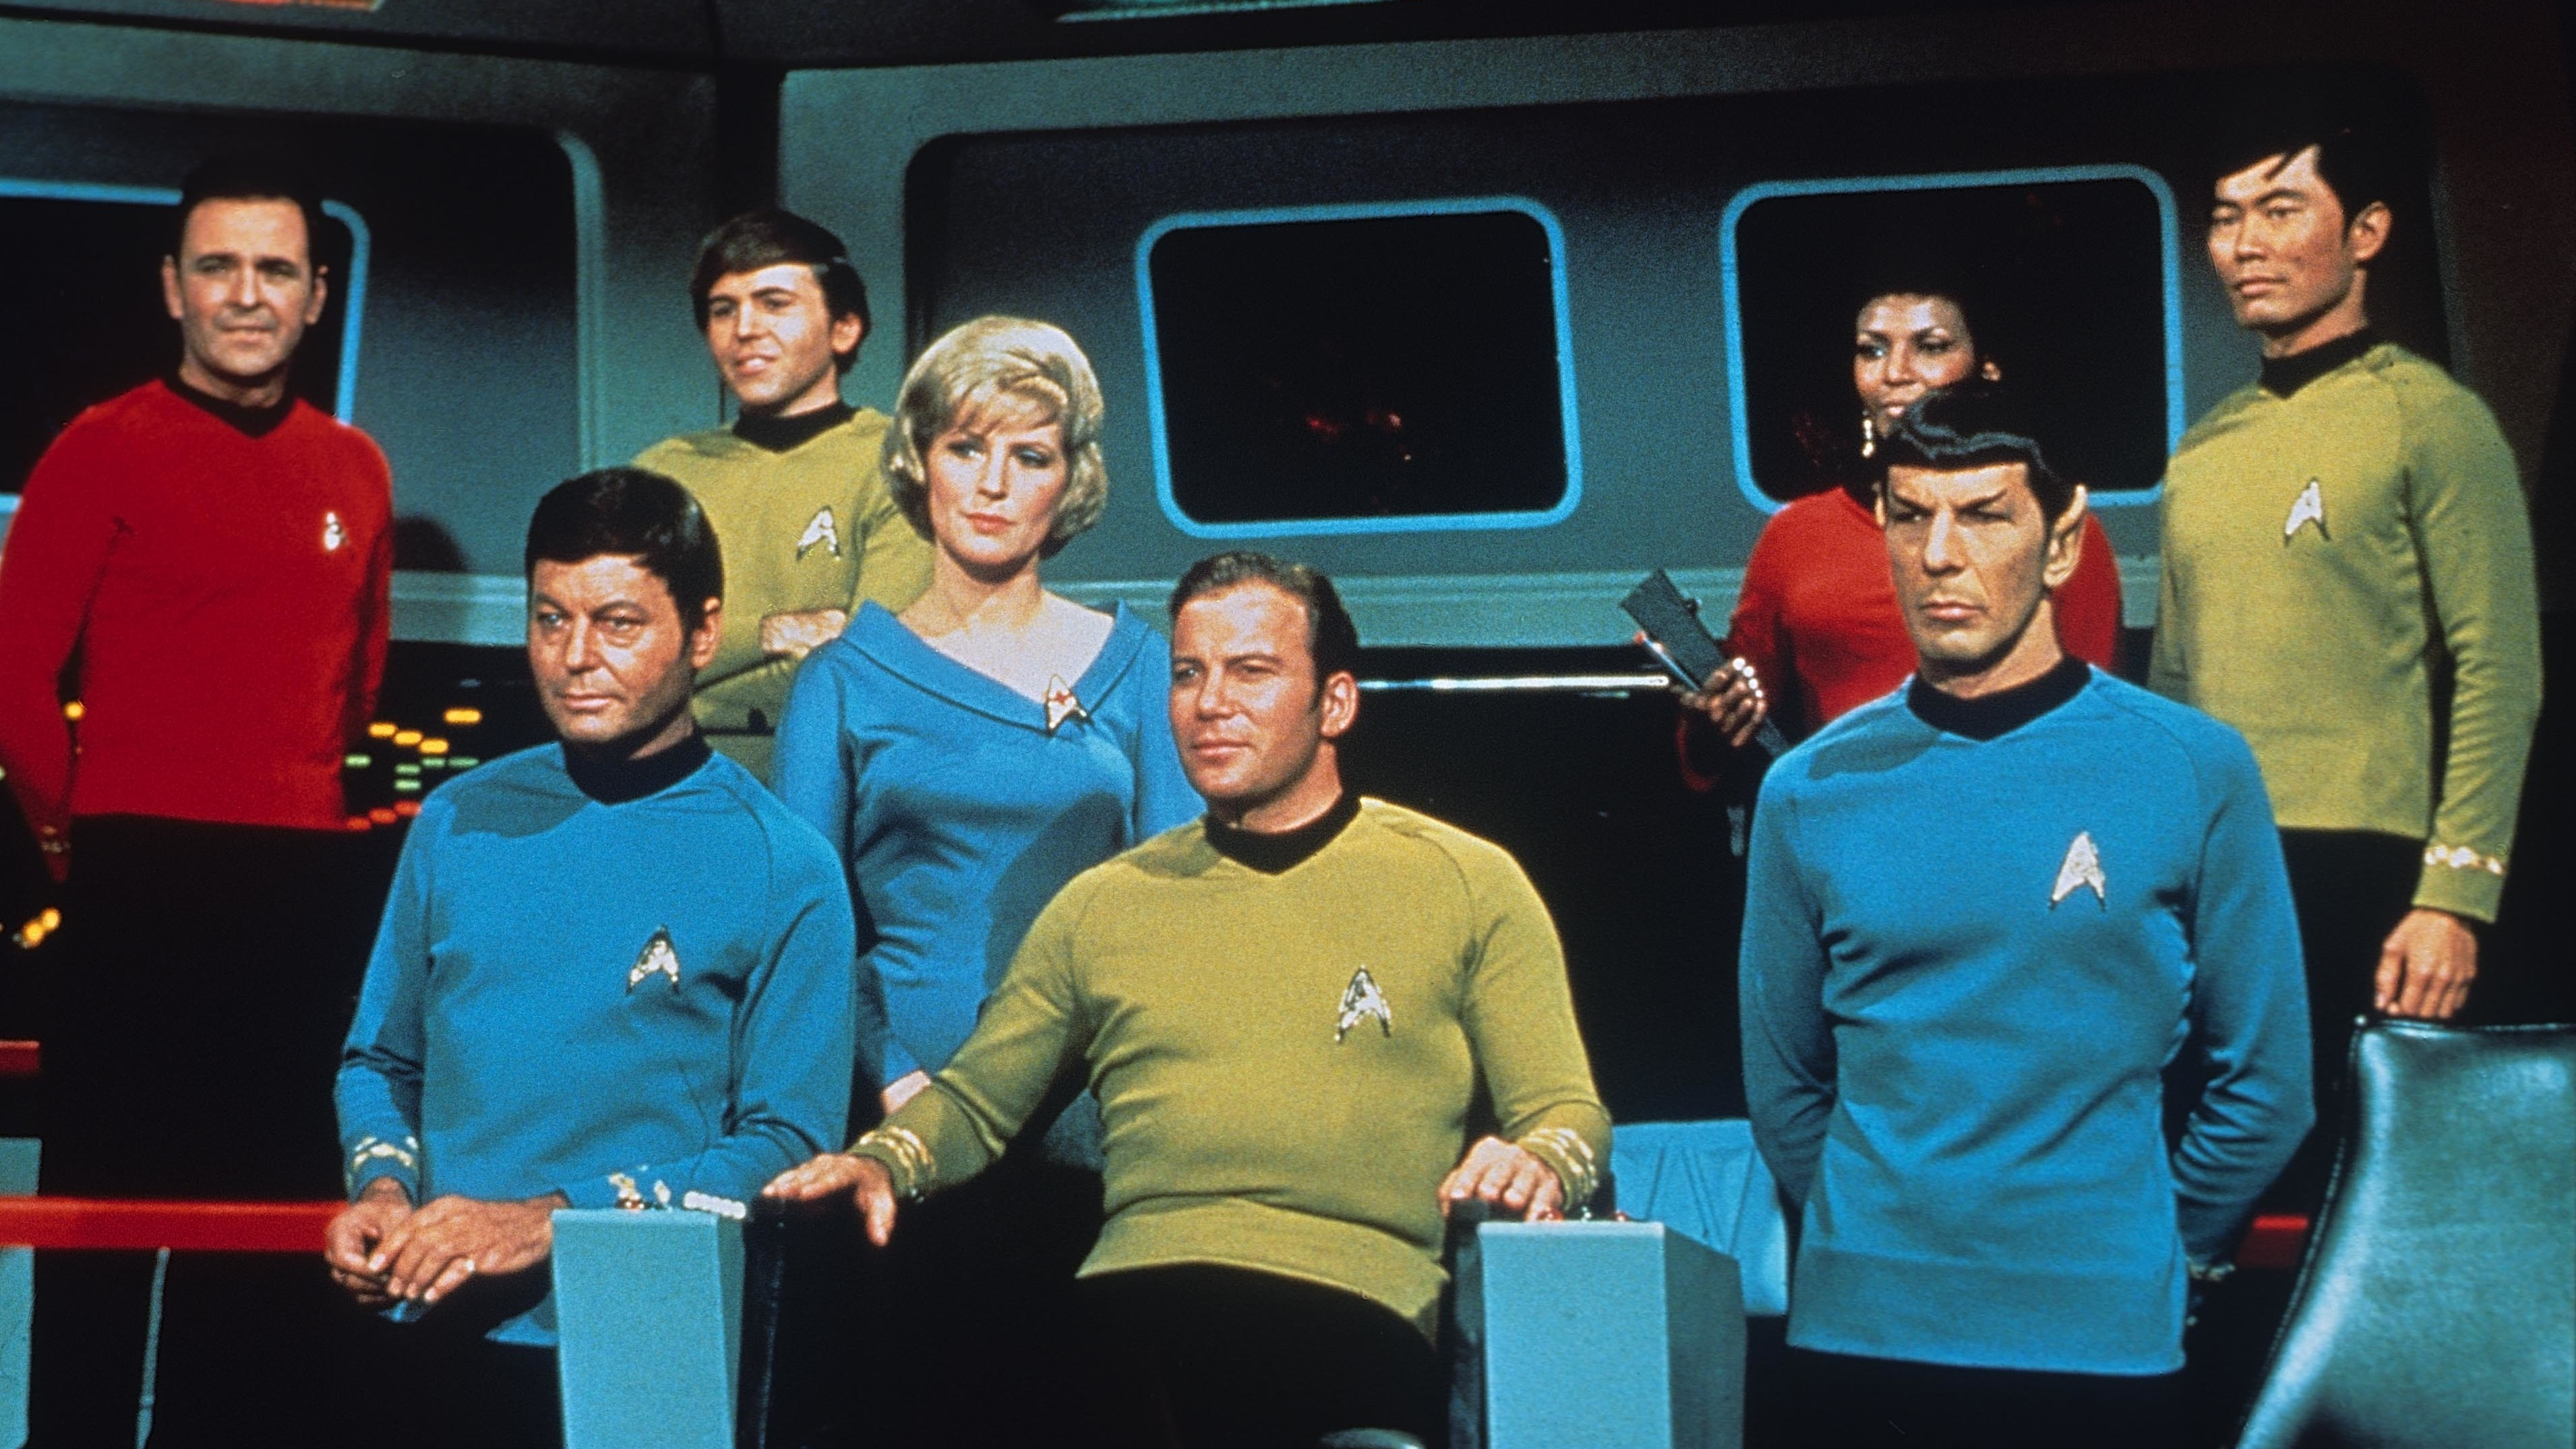 George Takei predicted Star Trek would be too sophisticated to last — but he says he's happy to have been proved wrong. (Photo courtesy of The Kobal Collection/Paramount Television)